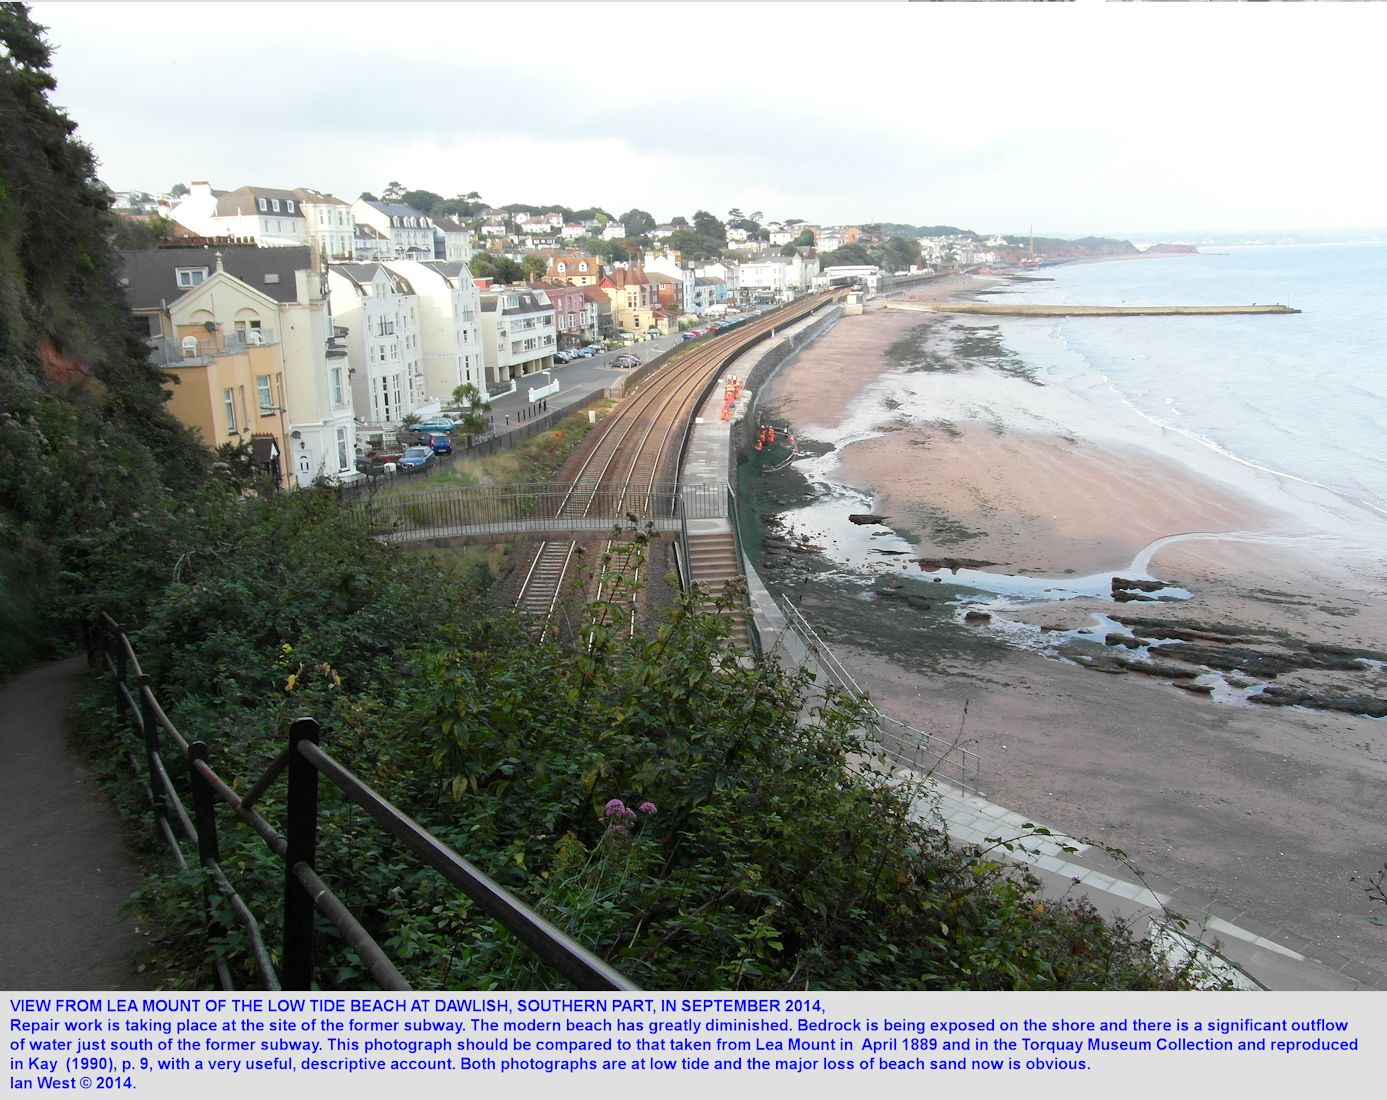 A view of the diminished Dawlish beach south of the railway station, as seen at low tide, from Lea Mount, 29th September 2014, Dawlish,  Devon